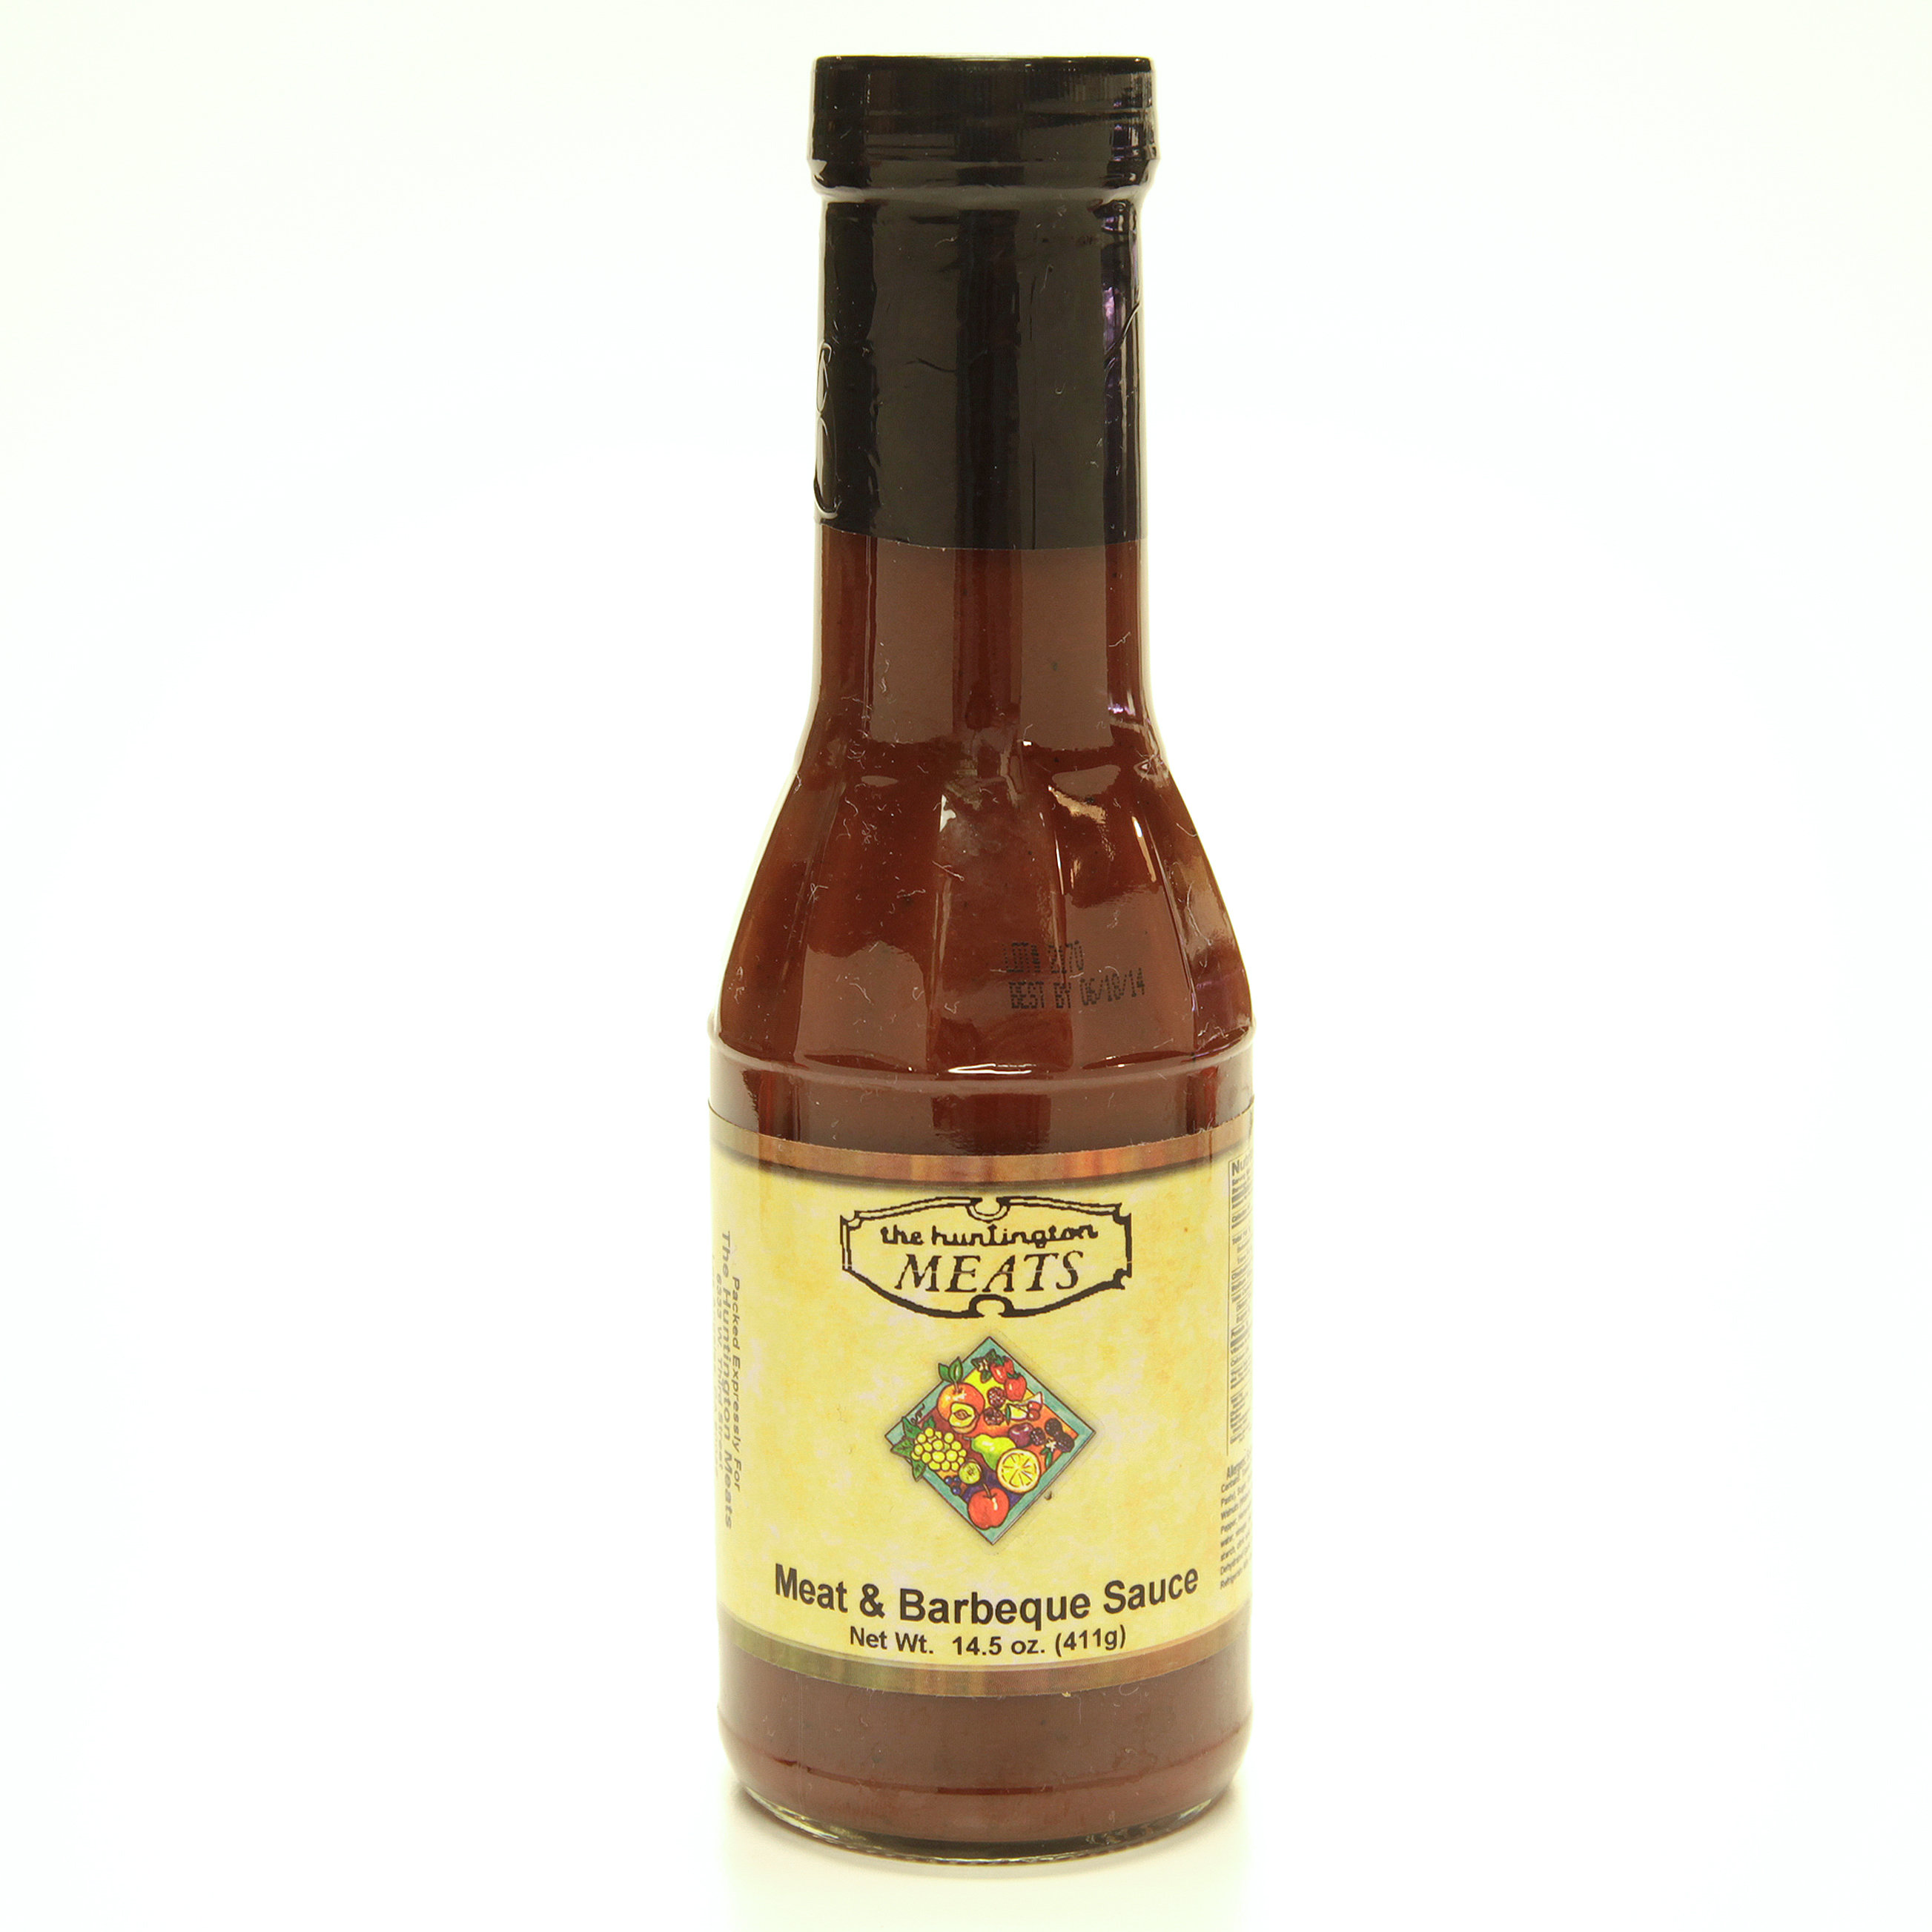 Meat & Barbeque Sauce, 14.5 oz. 00016